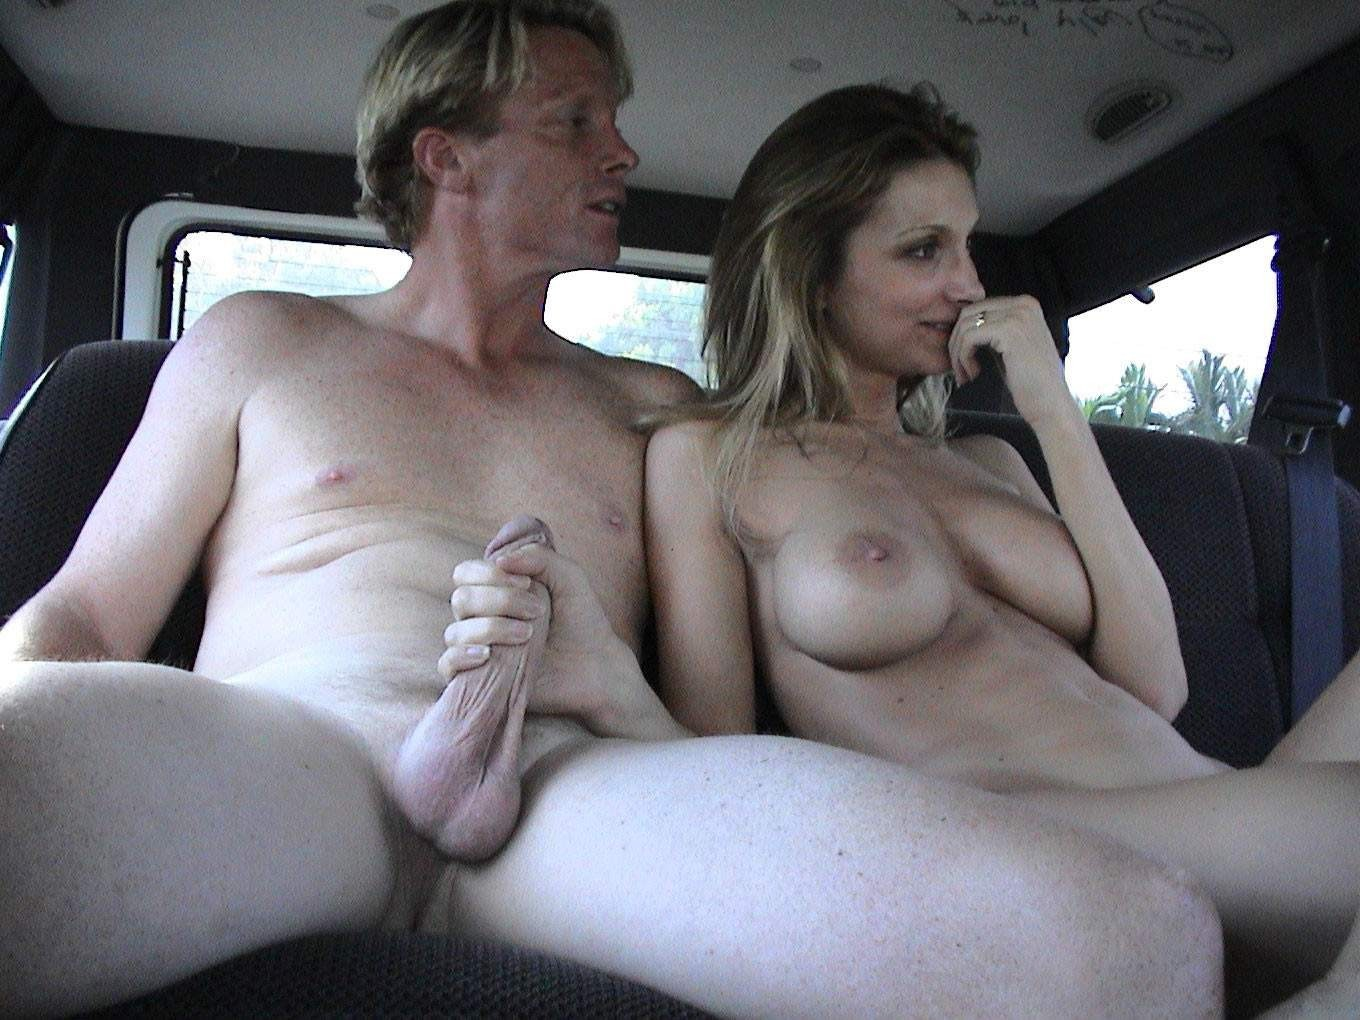 Come see the best just fucked amateur sex